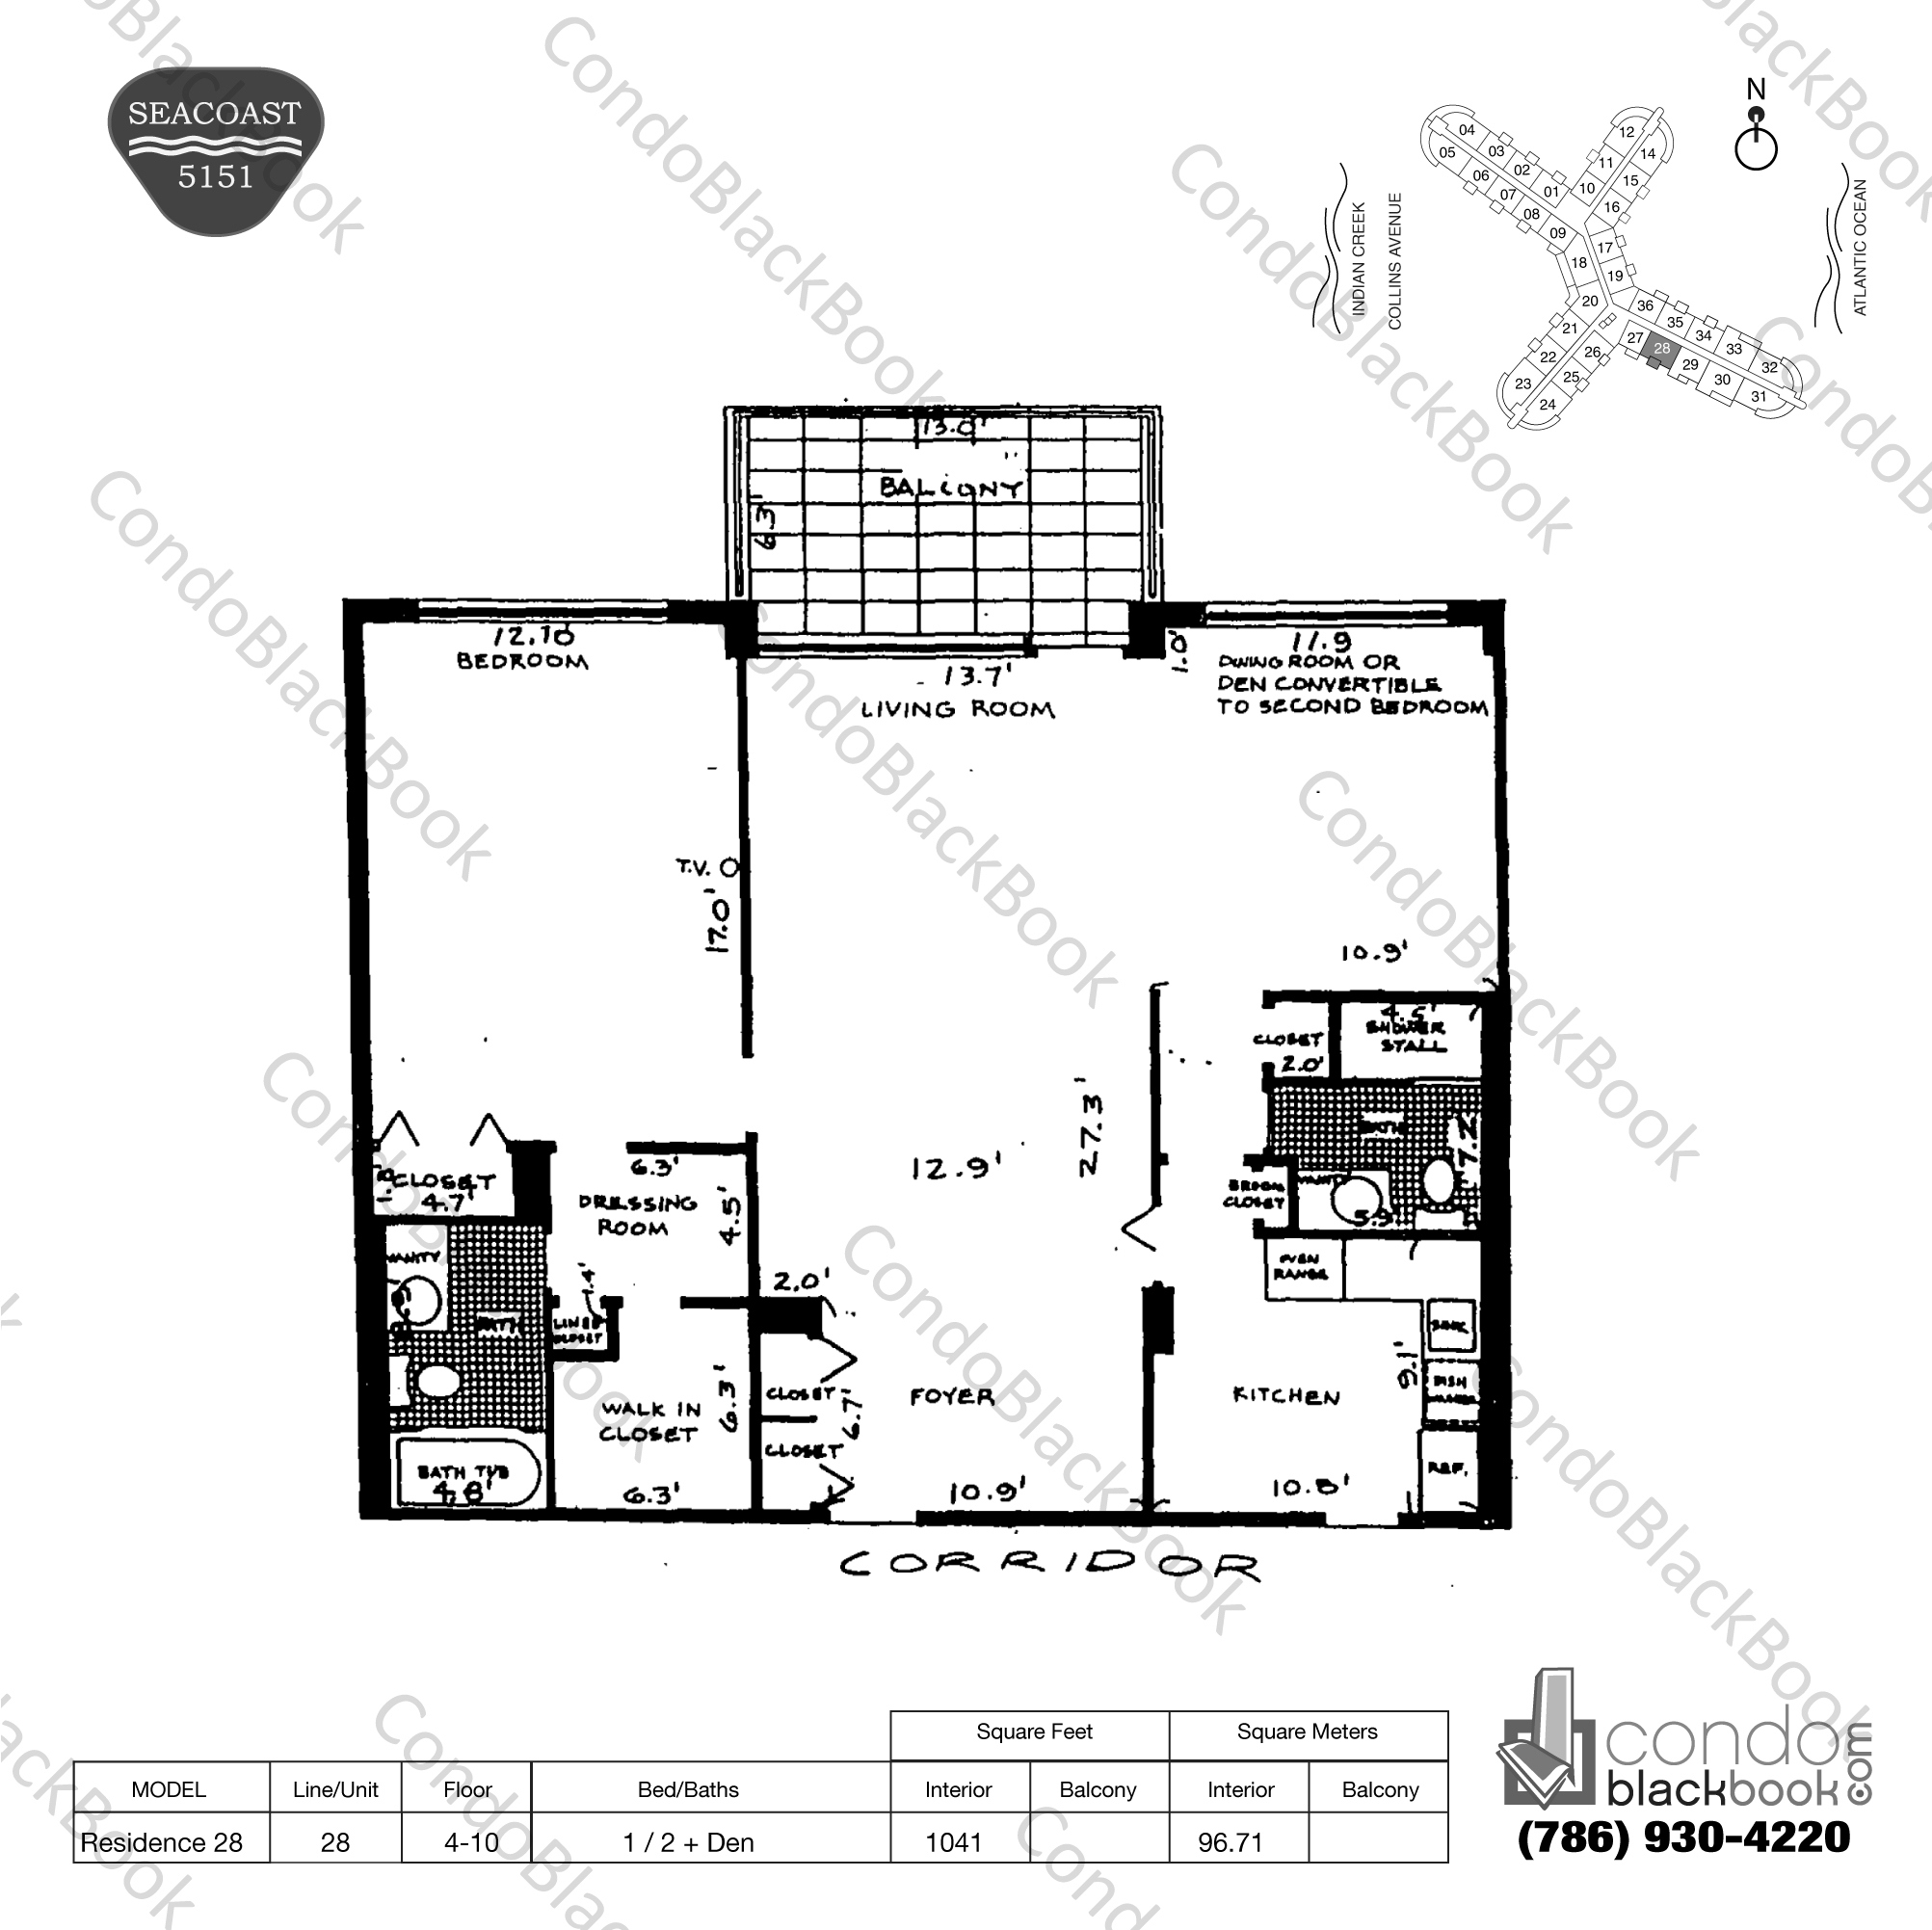 Floor plan for Seacoast 5151 Mid-Beach Miami Beach, model Residence 28, line 28, 1 / 2 + Den bedrooms, 1041 sq ft